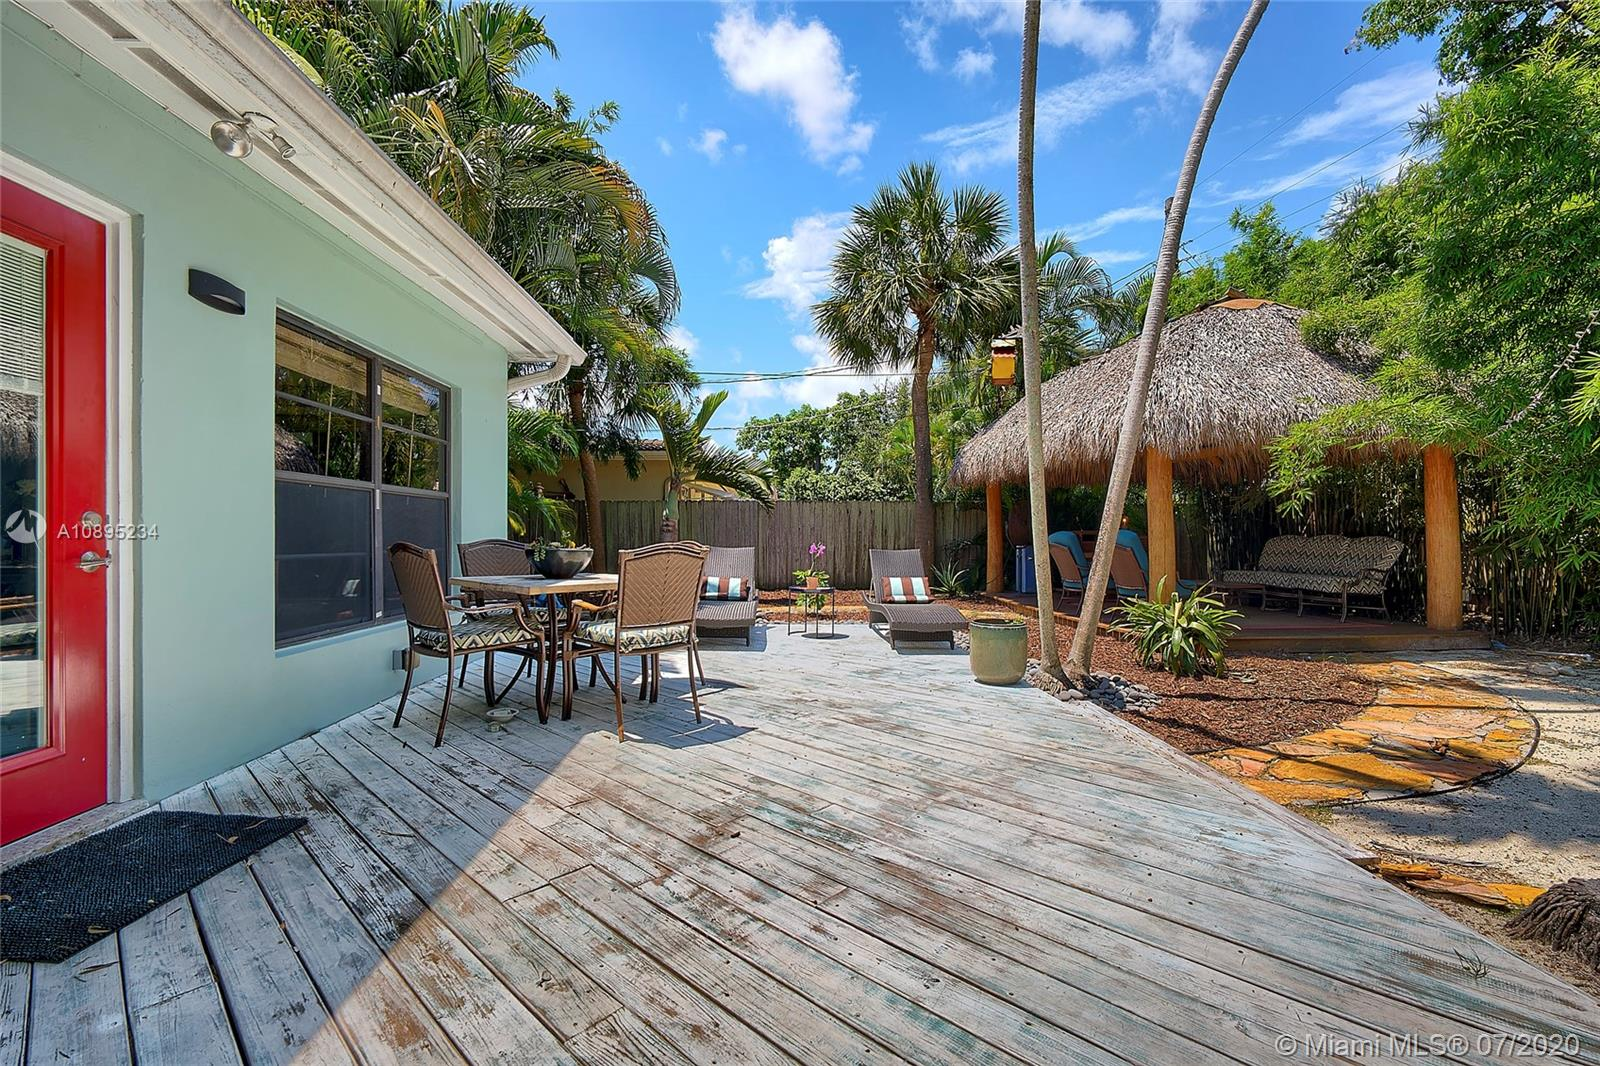 """During these times of """"staying in"""", imagine having a home that's YOUR OWN PRIVATE OASIS!  When everything is back to normal, you'll be hosting family gatherings, holidays or sporting events. OWNER PRIDE, this home has 3 bedrooms, 2 full bathrooms and a large gated carport. Enjoy your morning coffee in your tiki-hut listening to the birds while surrounded by tropical landscaping. Privacy fence surrounds the entire property. Hurry up because this one really WILL NOT LAST! Charming Victoria Park area. Located on a very quiet street, easy access to downtown Fort Lauderdale/Wilton Manors, 1 mile to the beach, shopping, movies, restaurants & entertainment. New roof 10/2018 (architectural shingle). AC replaced 2013. Bathrooms remodeled 2017. Wood burning fireplace."""